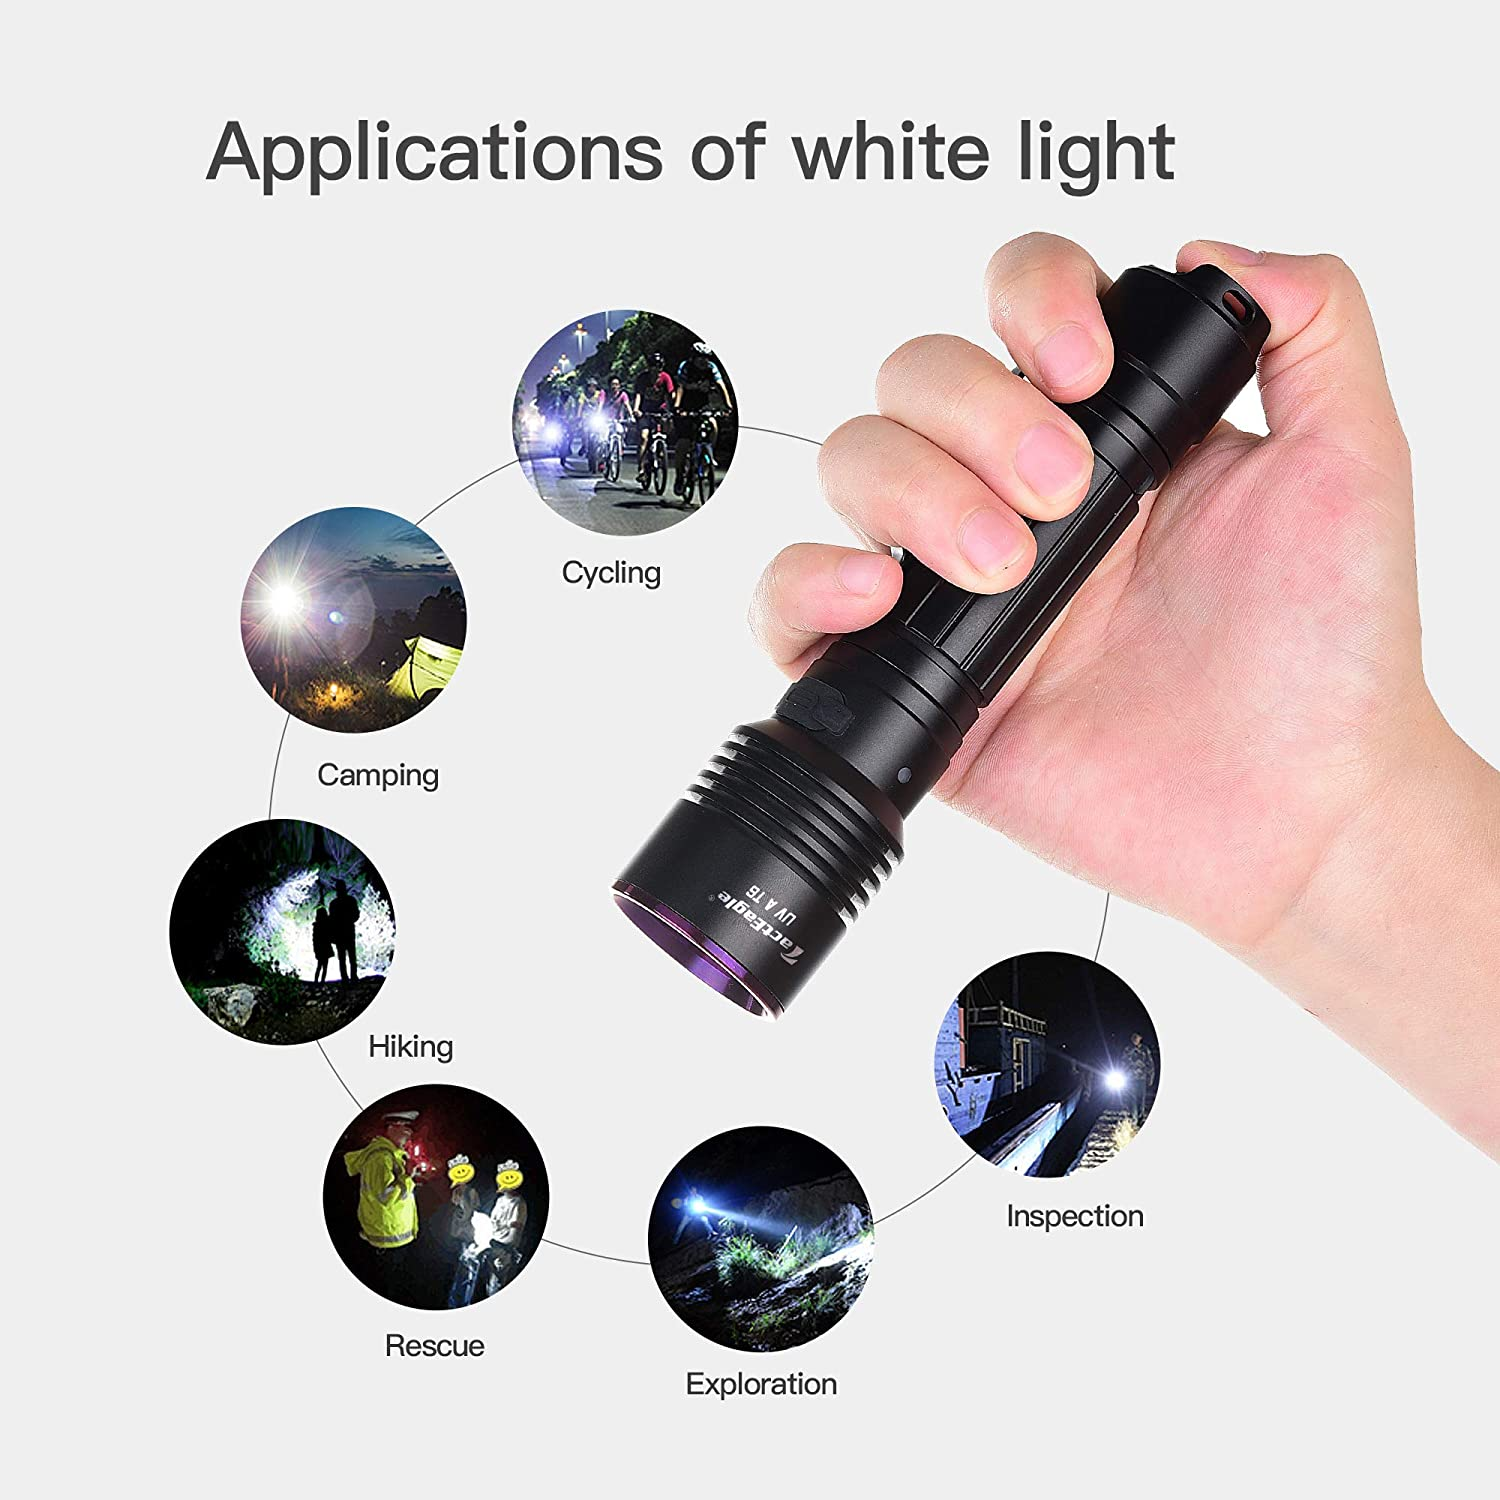 TactEagle UVA-T6 Black light /& 400 Lumens Rechargeable Flashlight 2 in 1 365NM Strong UV Flashlight for Urine Detection Minerals Resin Curing Scorpion Camping Hiking Fishing Outdoor Adventures